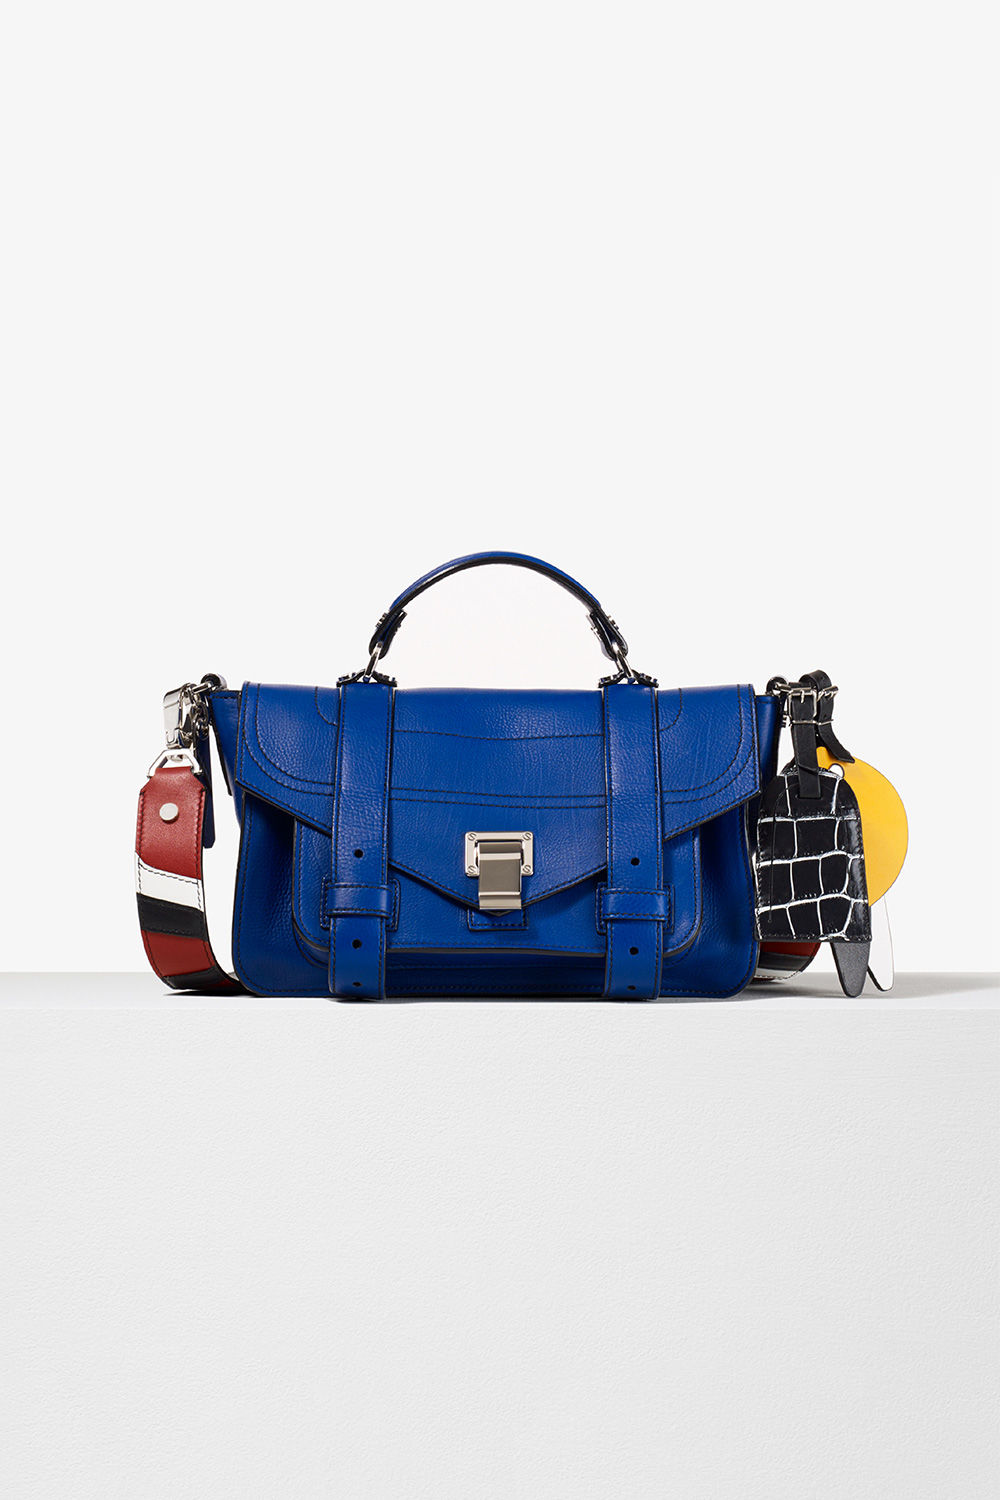 proenza schouler spring 2017 lapsi grainy calf leather ps1+ tiny bag with patchwork strap